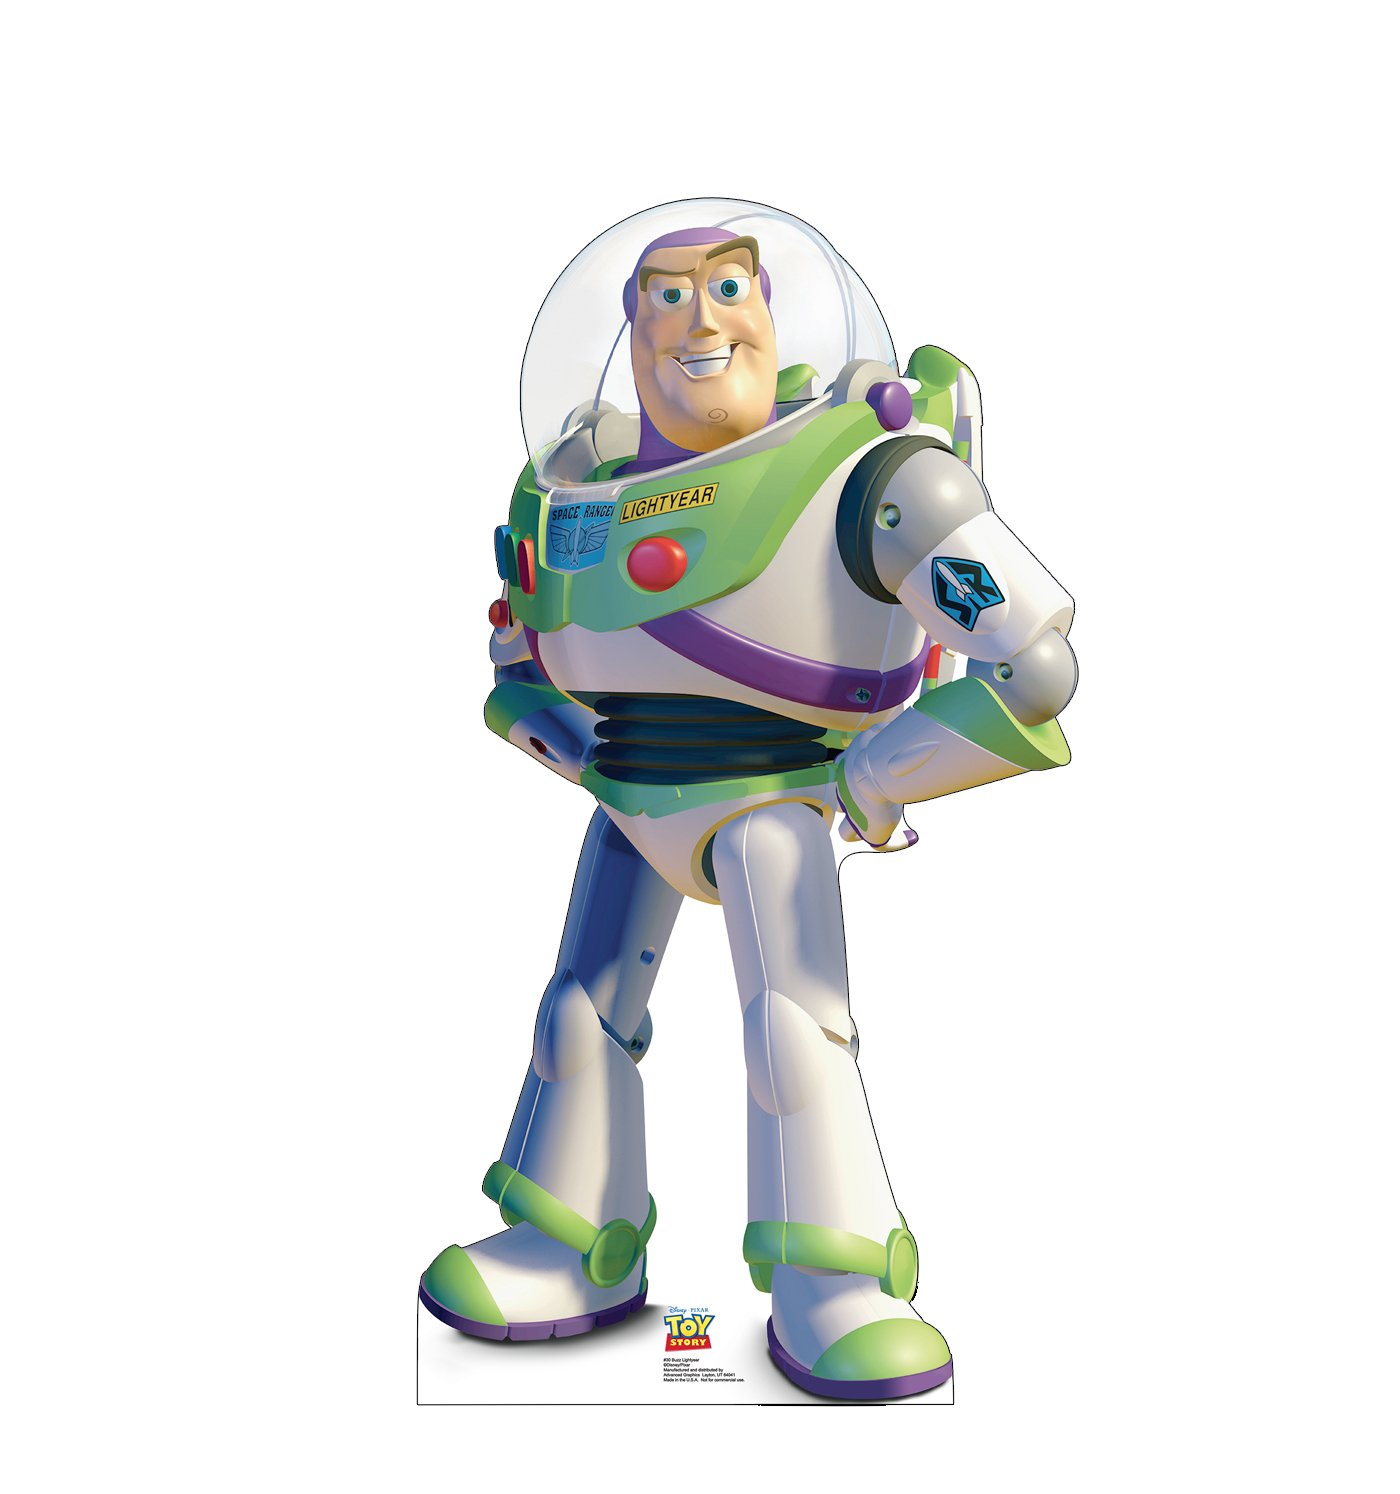 Advanced Graphics Buzz Lightyear Life Size Cardboard Cutout Standup - Disney Pixar's Toy Story